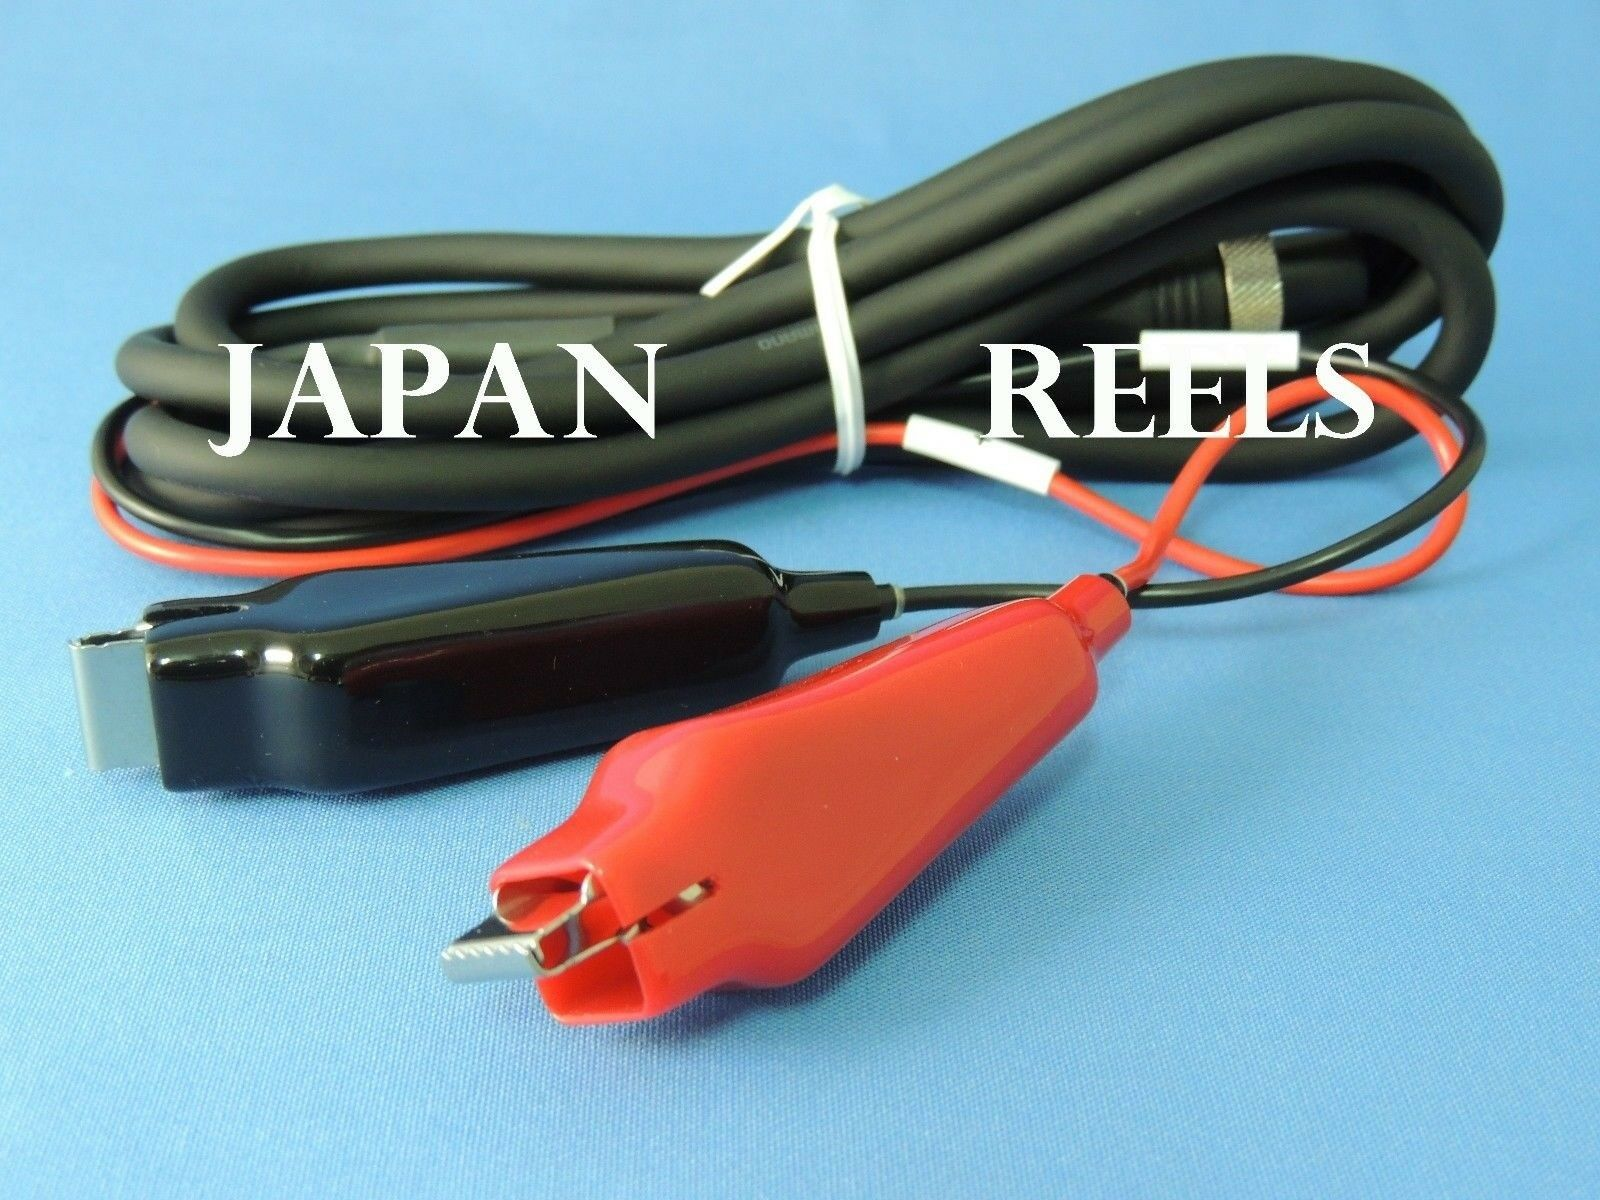 NEW SHIMANO GENUINE POWER CABLE WIRE for FORCE MASTER 9000 6000 FAST DELIVERY